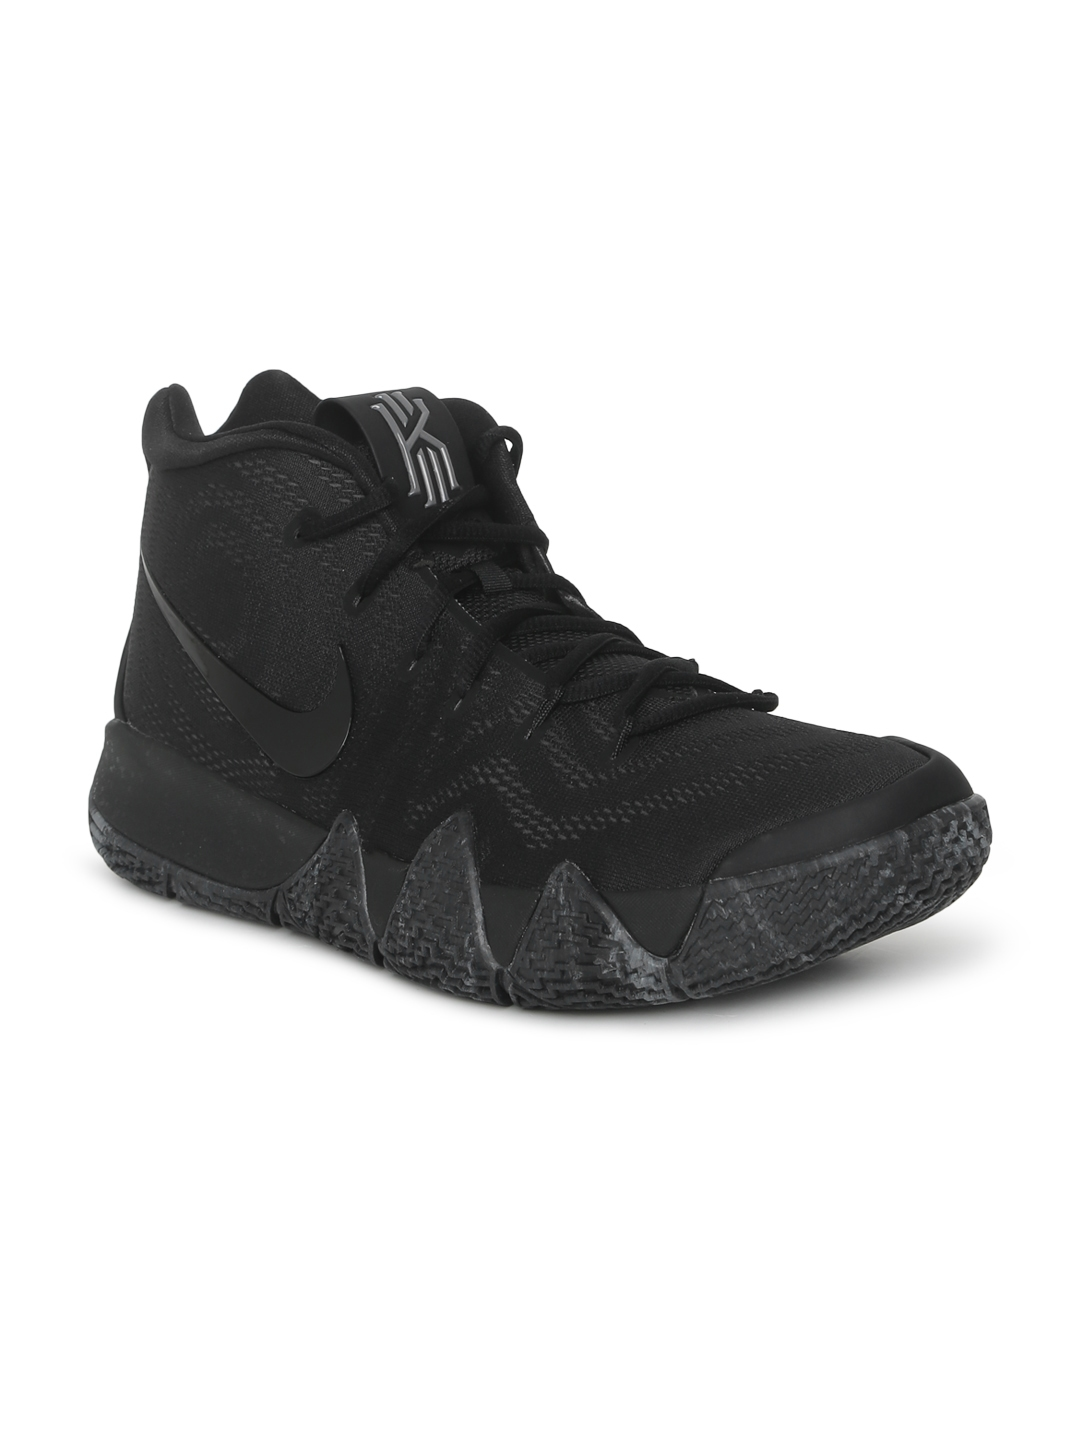 2a4bc136d1e Buy Nike Men Black Kyrie 4 Basketball Shoe - Sports Shoes for Men ...